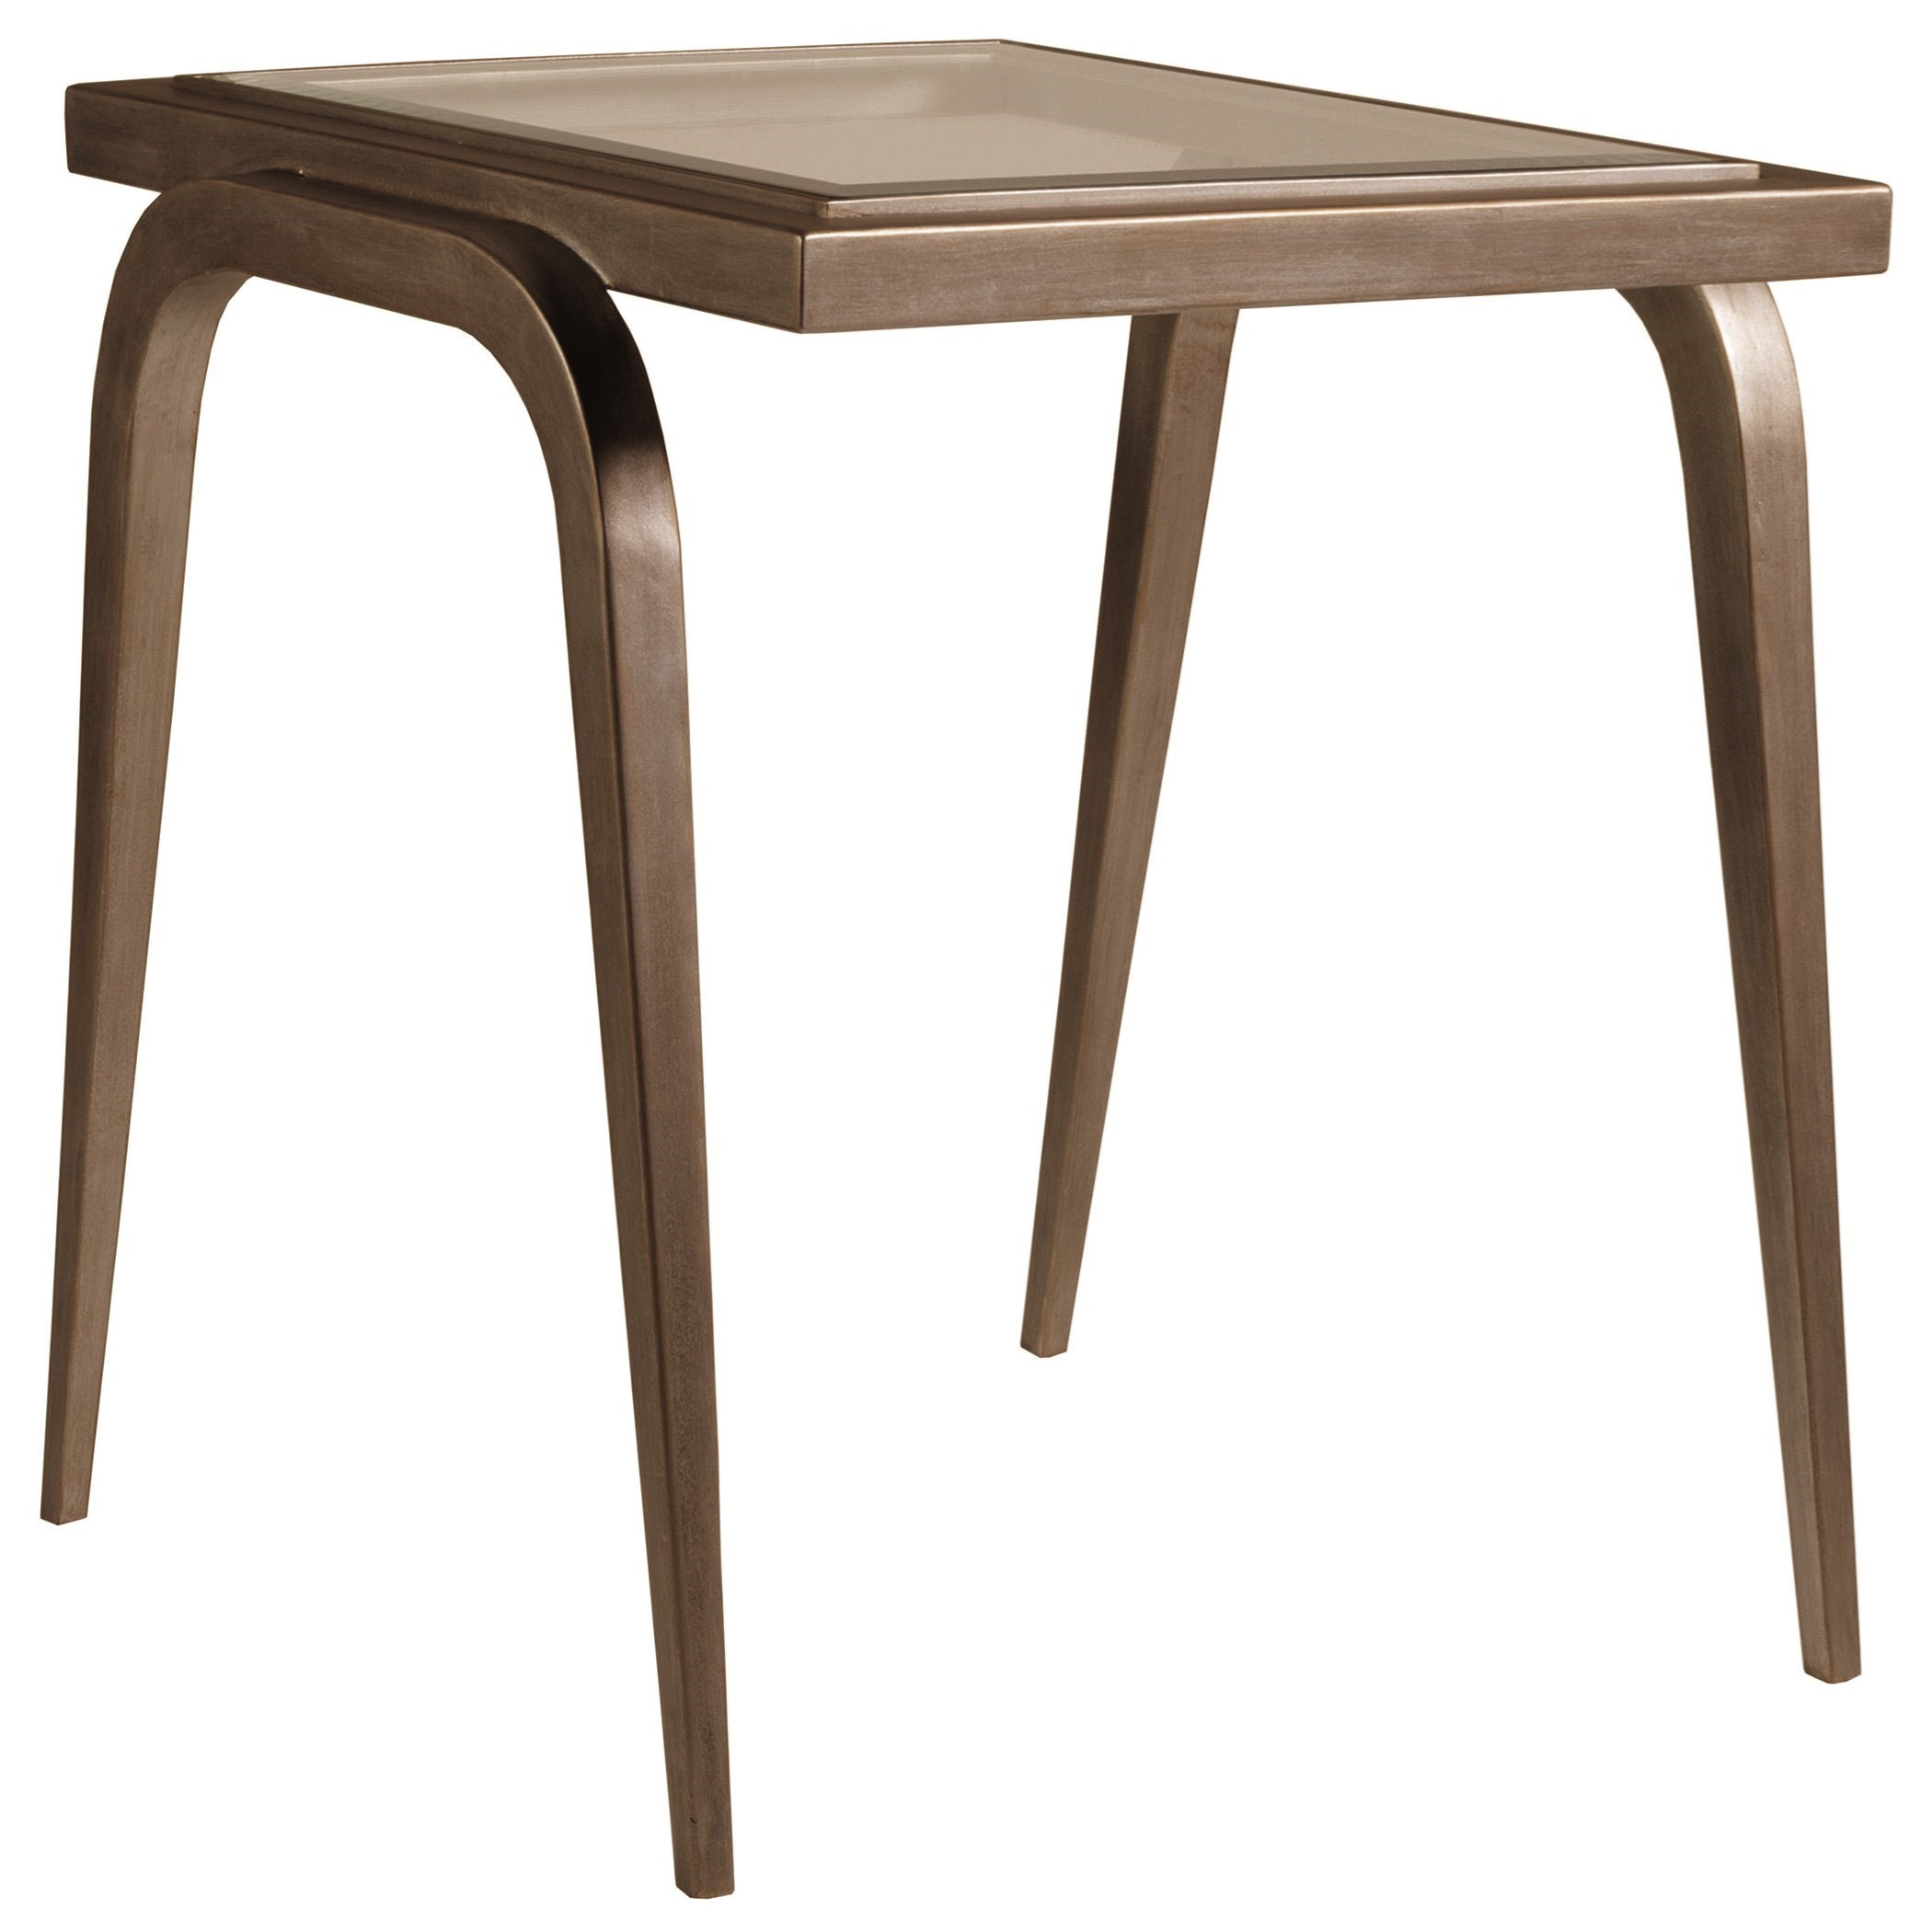 Mitchum Rectangular End Table with Glass Top